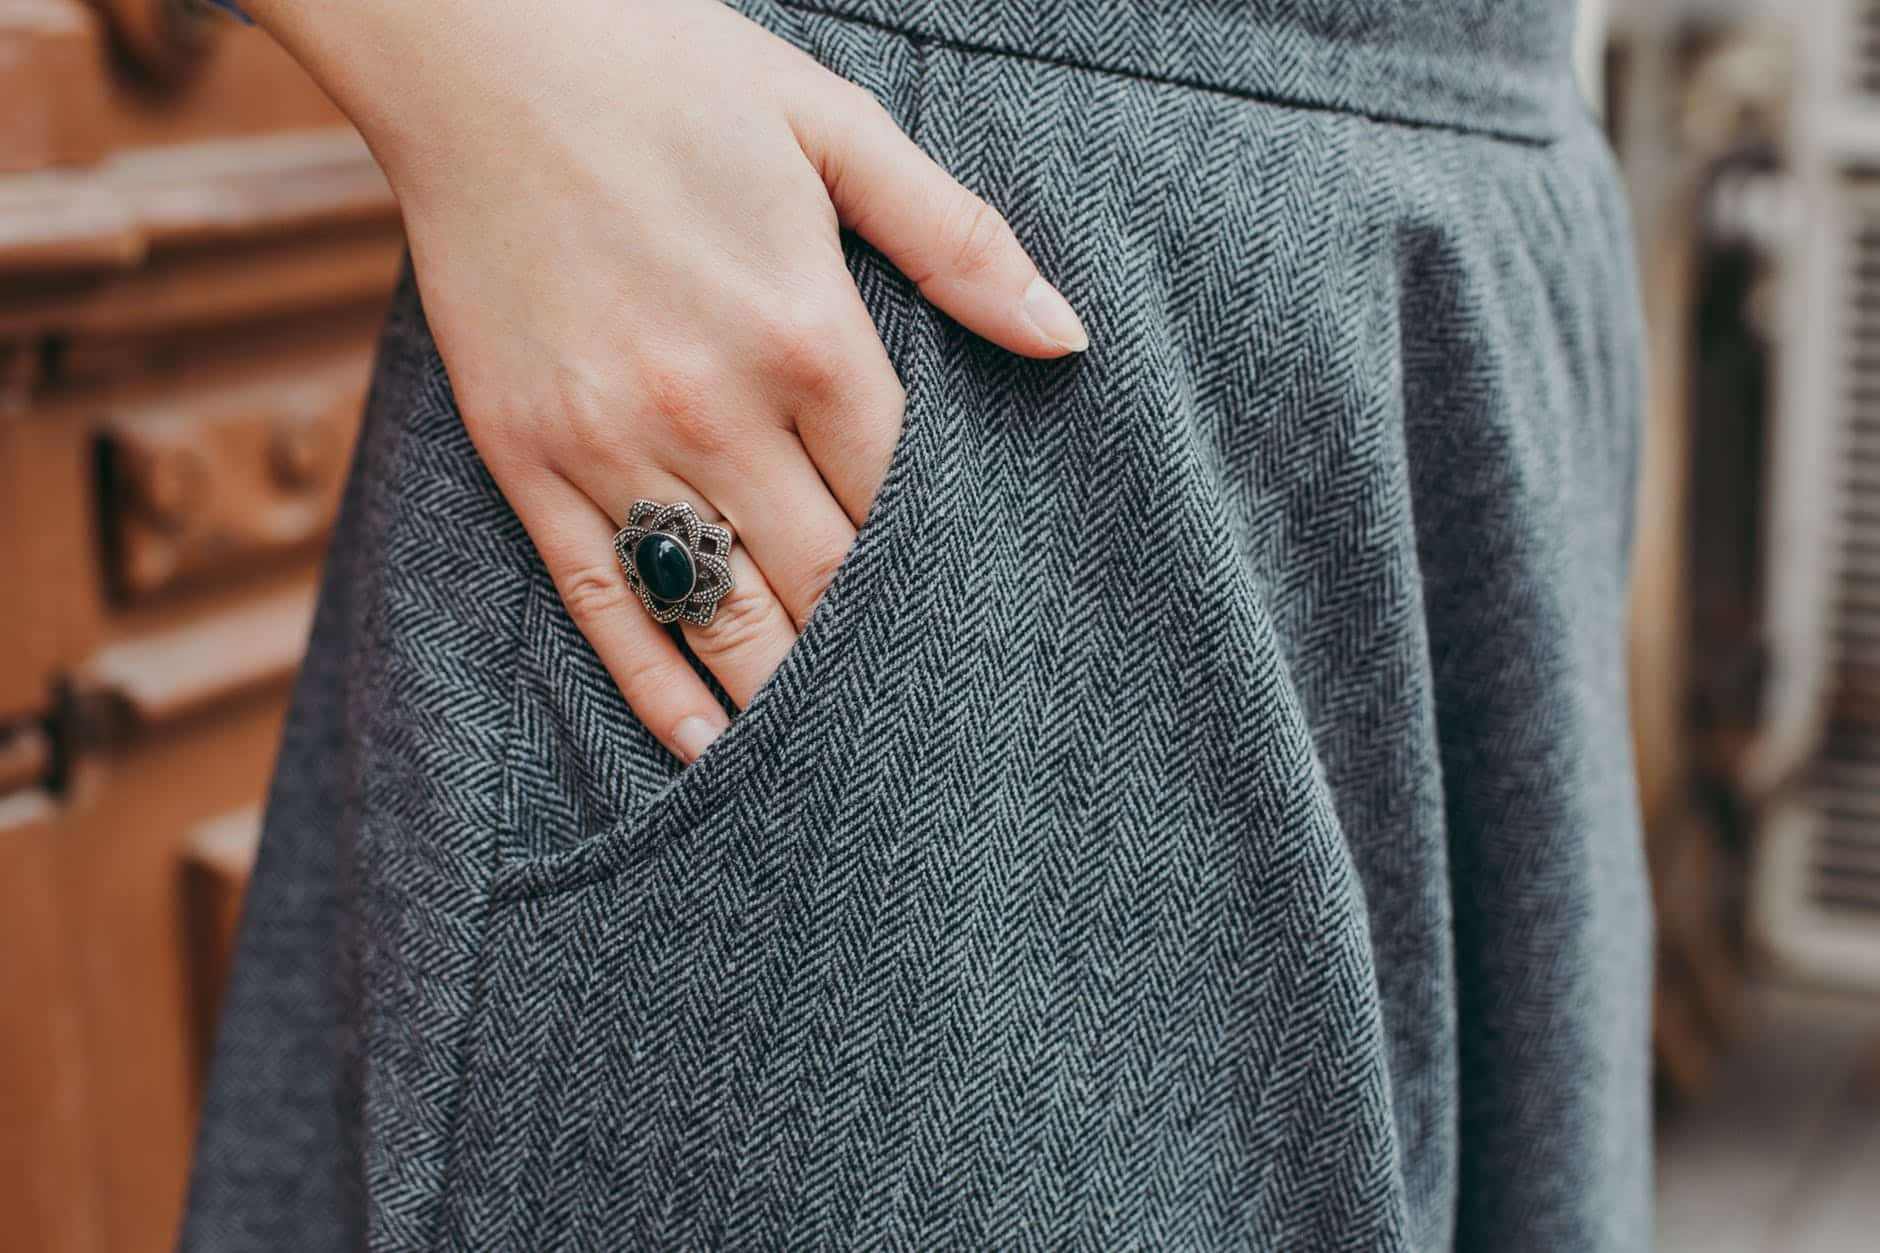 Woman's ringed hand in smart grey trouser pocket